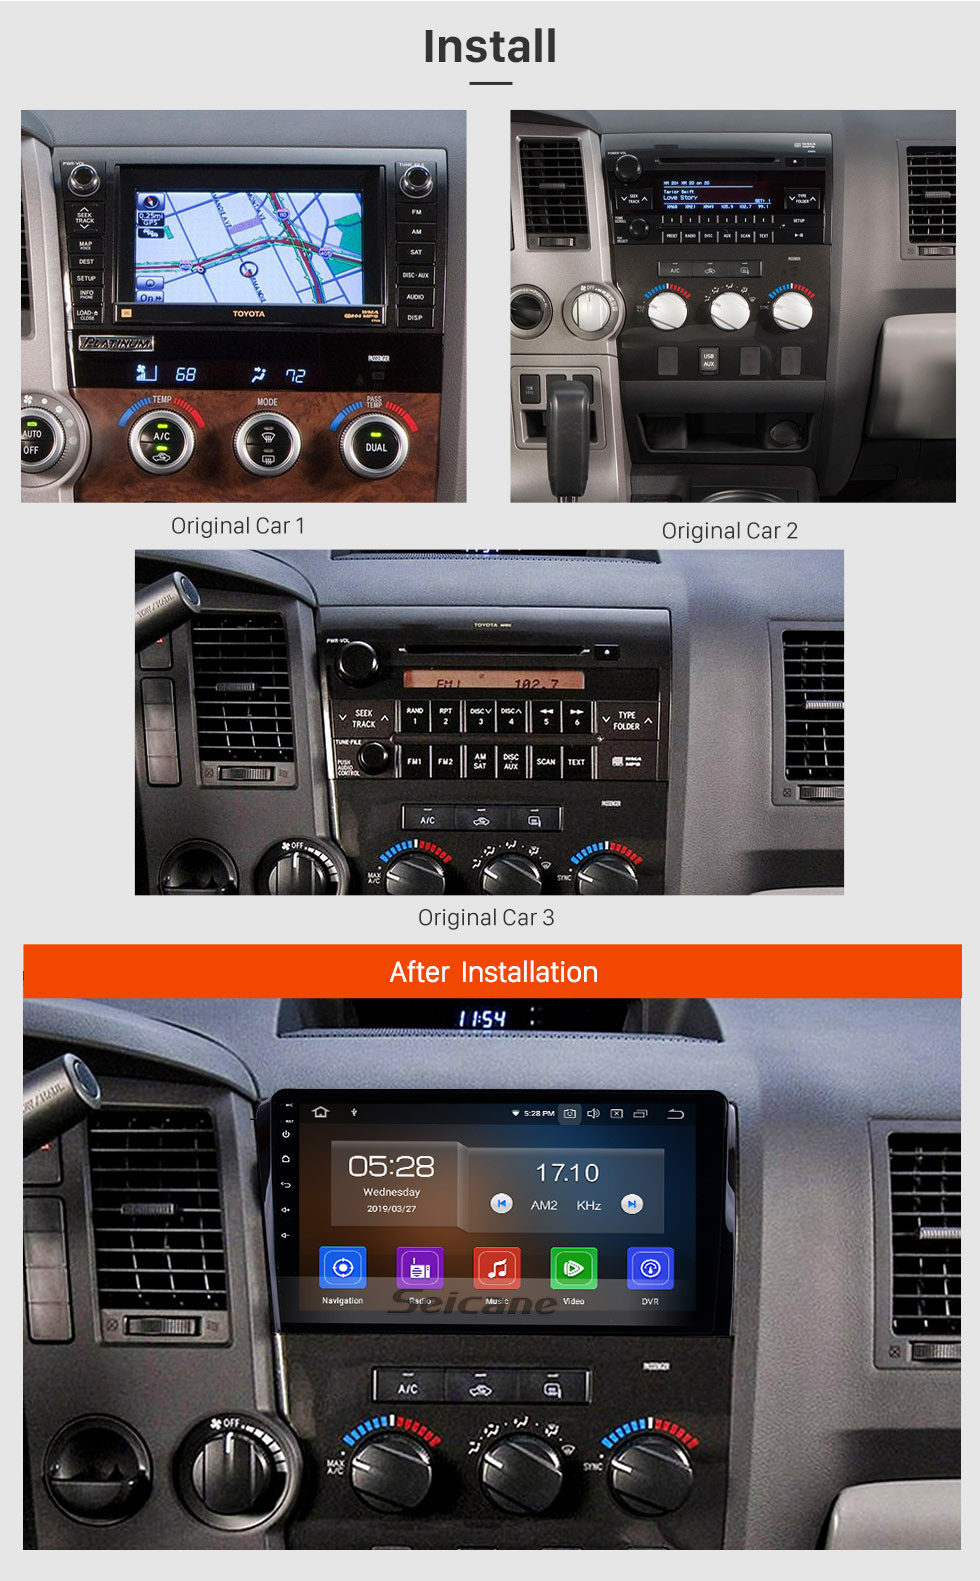 Seicane 2006-2014 Toyota Sequoia HD Touchscreen 10,1 Zoll Android 9,0 GPS Navigationsradio mit USB Bluetooth AUX Unterstützung 3G Digital TV Backup Kamera TPMS